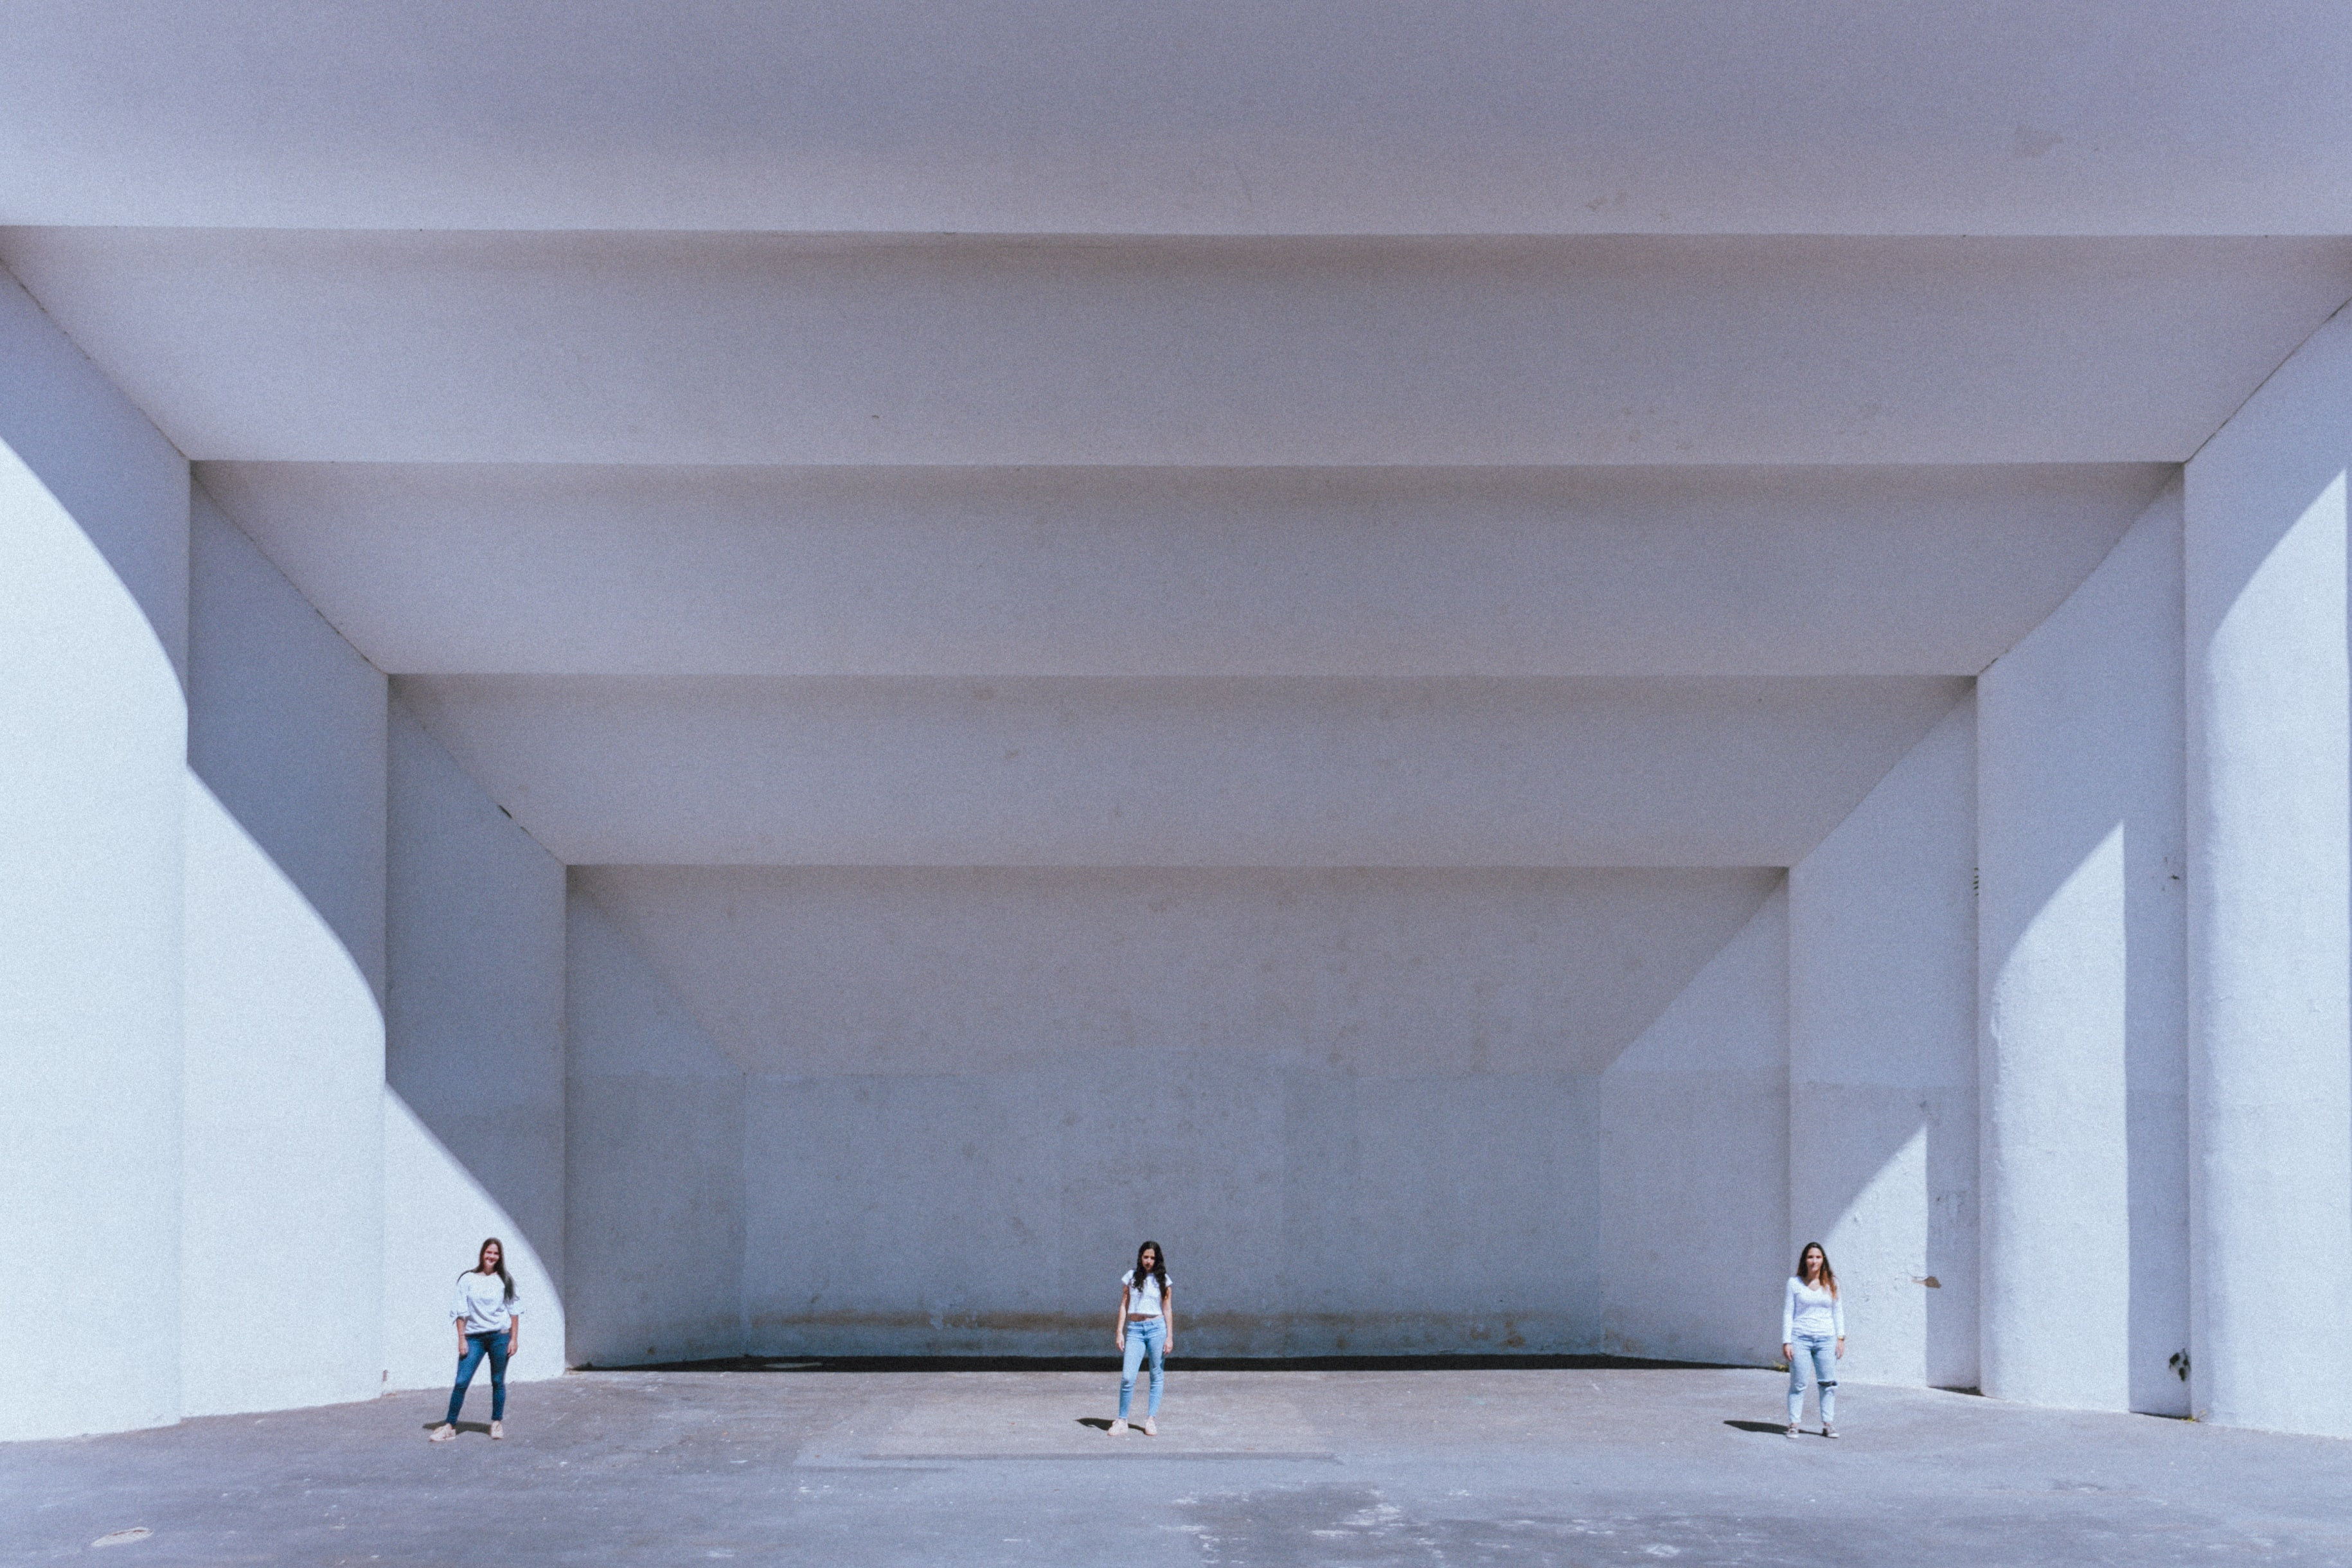 three women standing near white concrete building during daytime